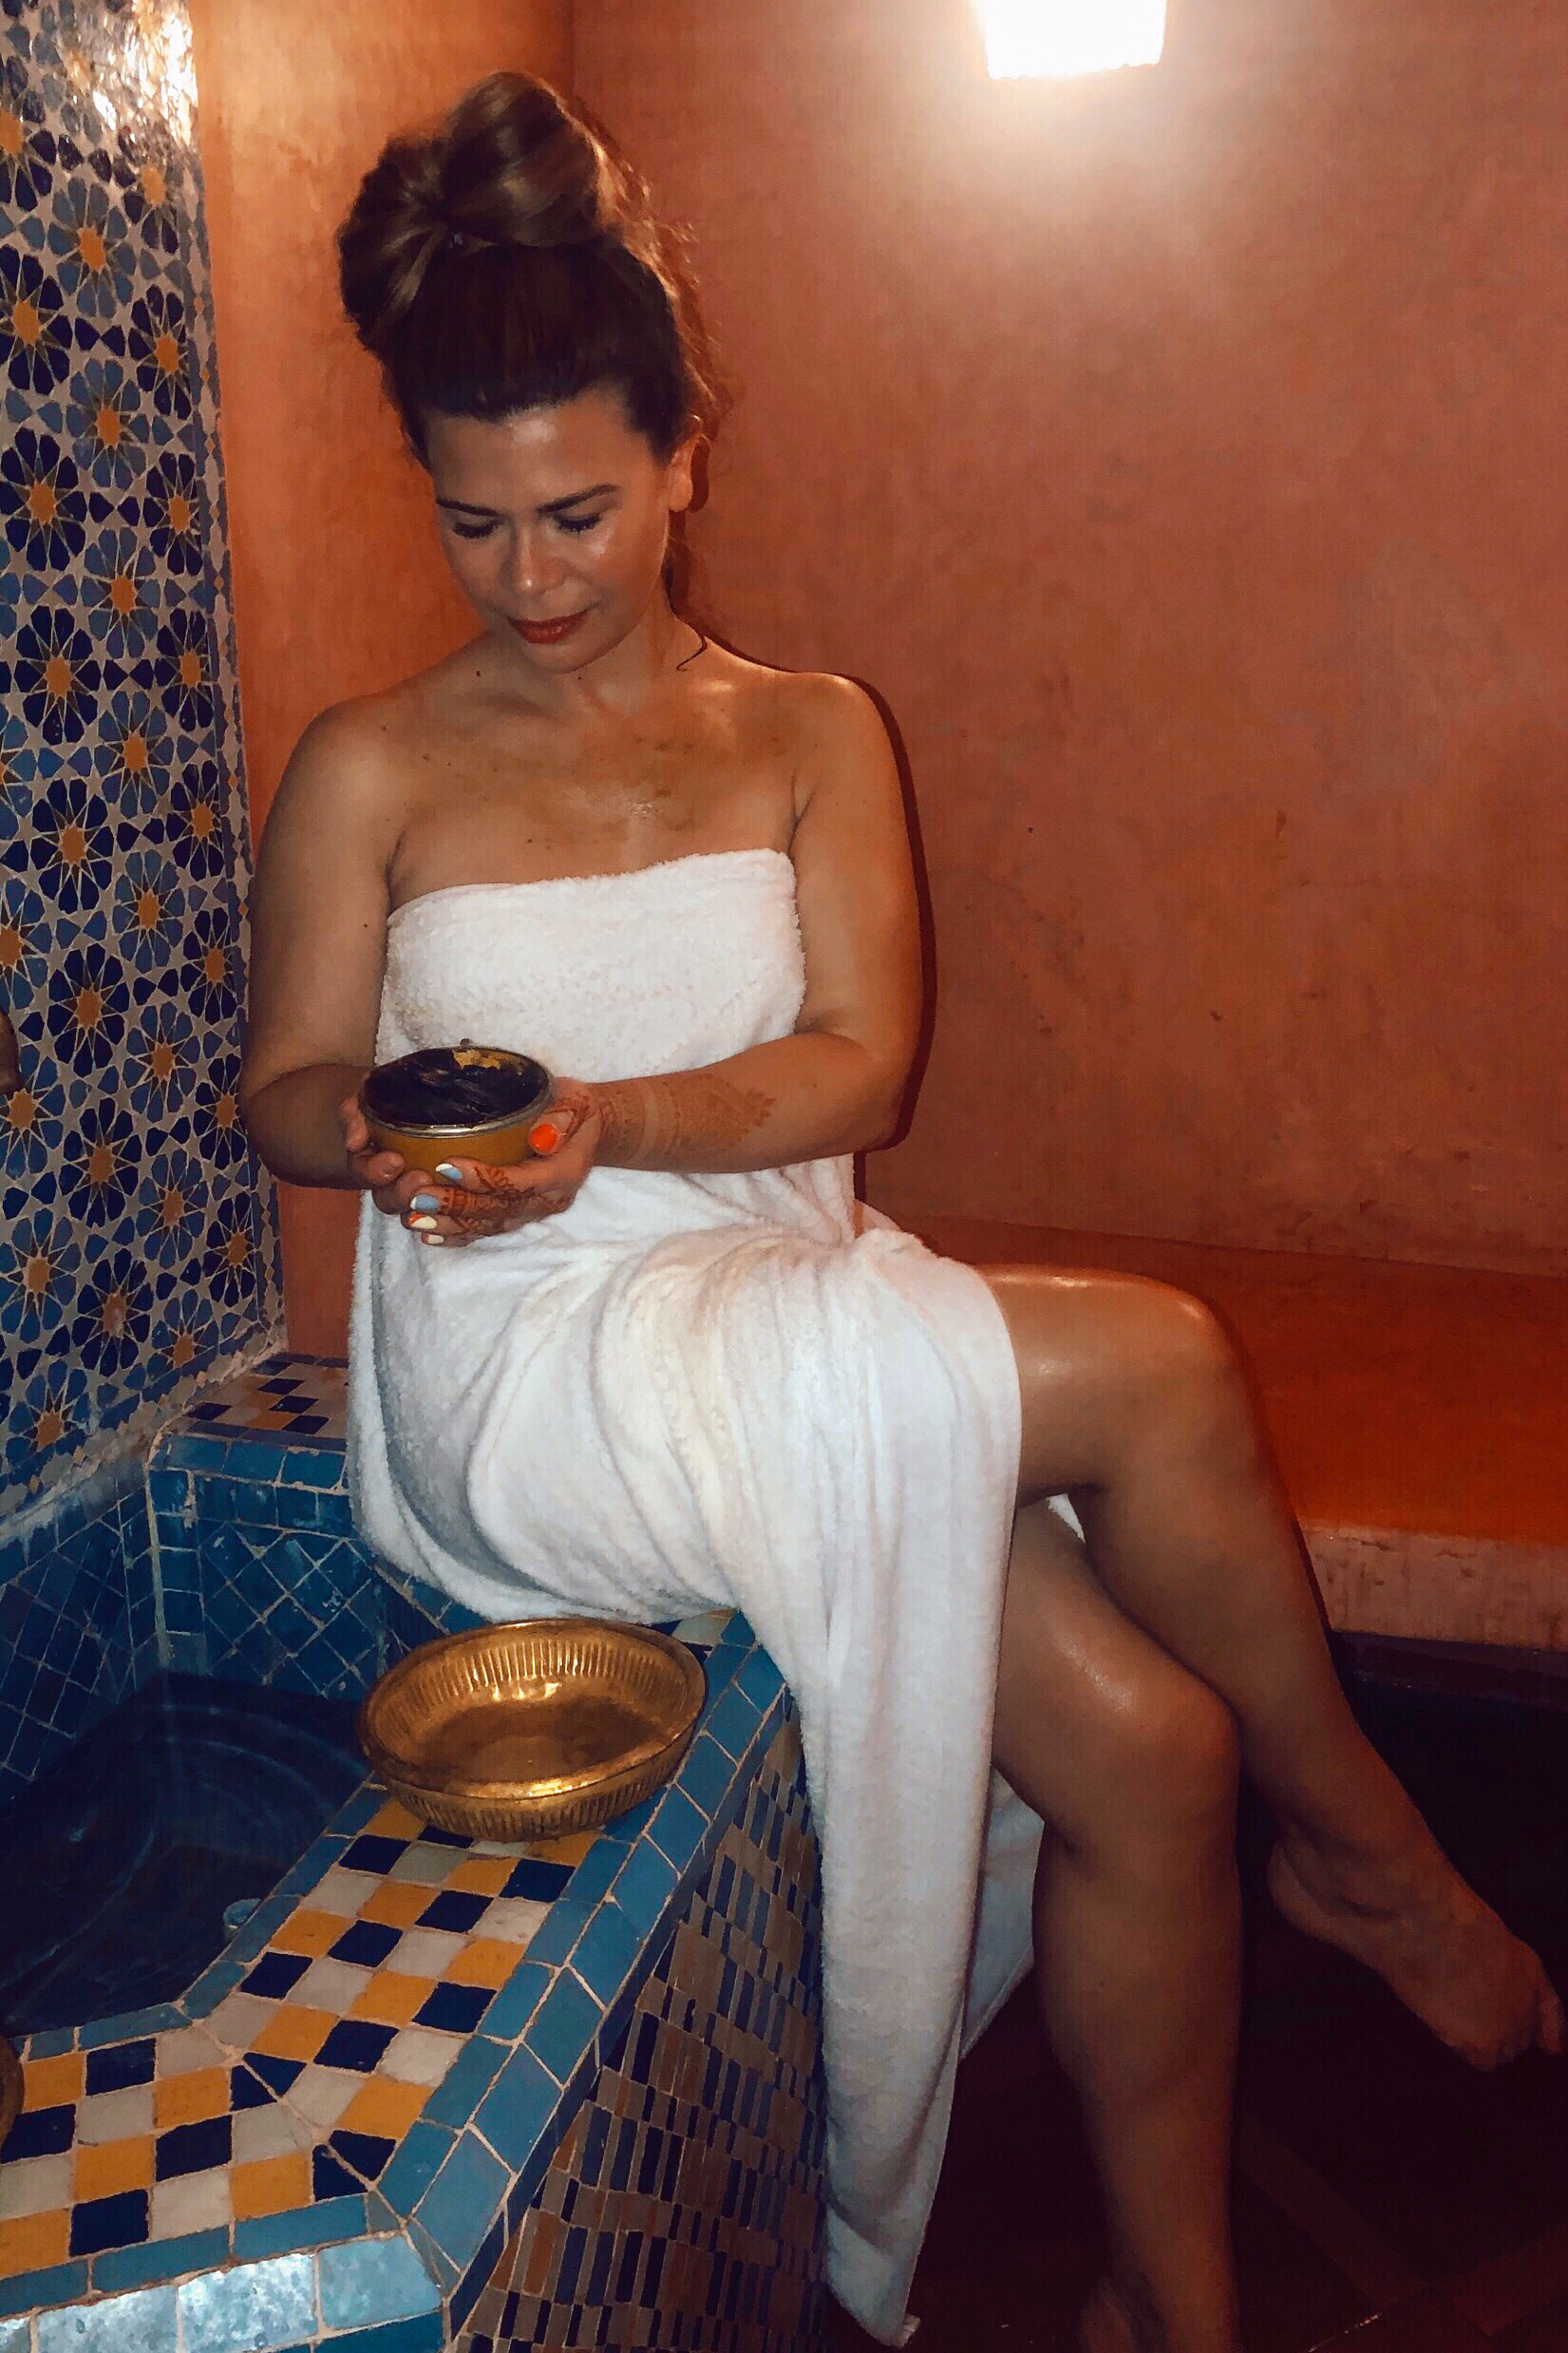 At a Hammam at the Es Saadi Hotel in Marrakesh. On my skin and in my hands is Beldi Soap - its softening our skin as we are (supposed to be) relaxing in the terracotta sauna.